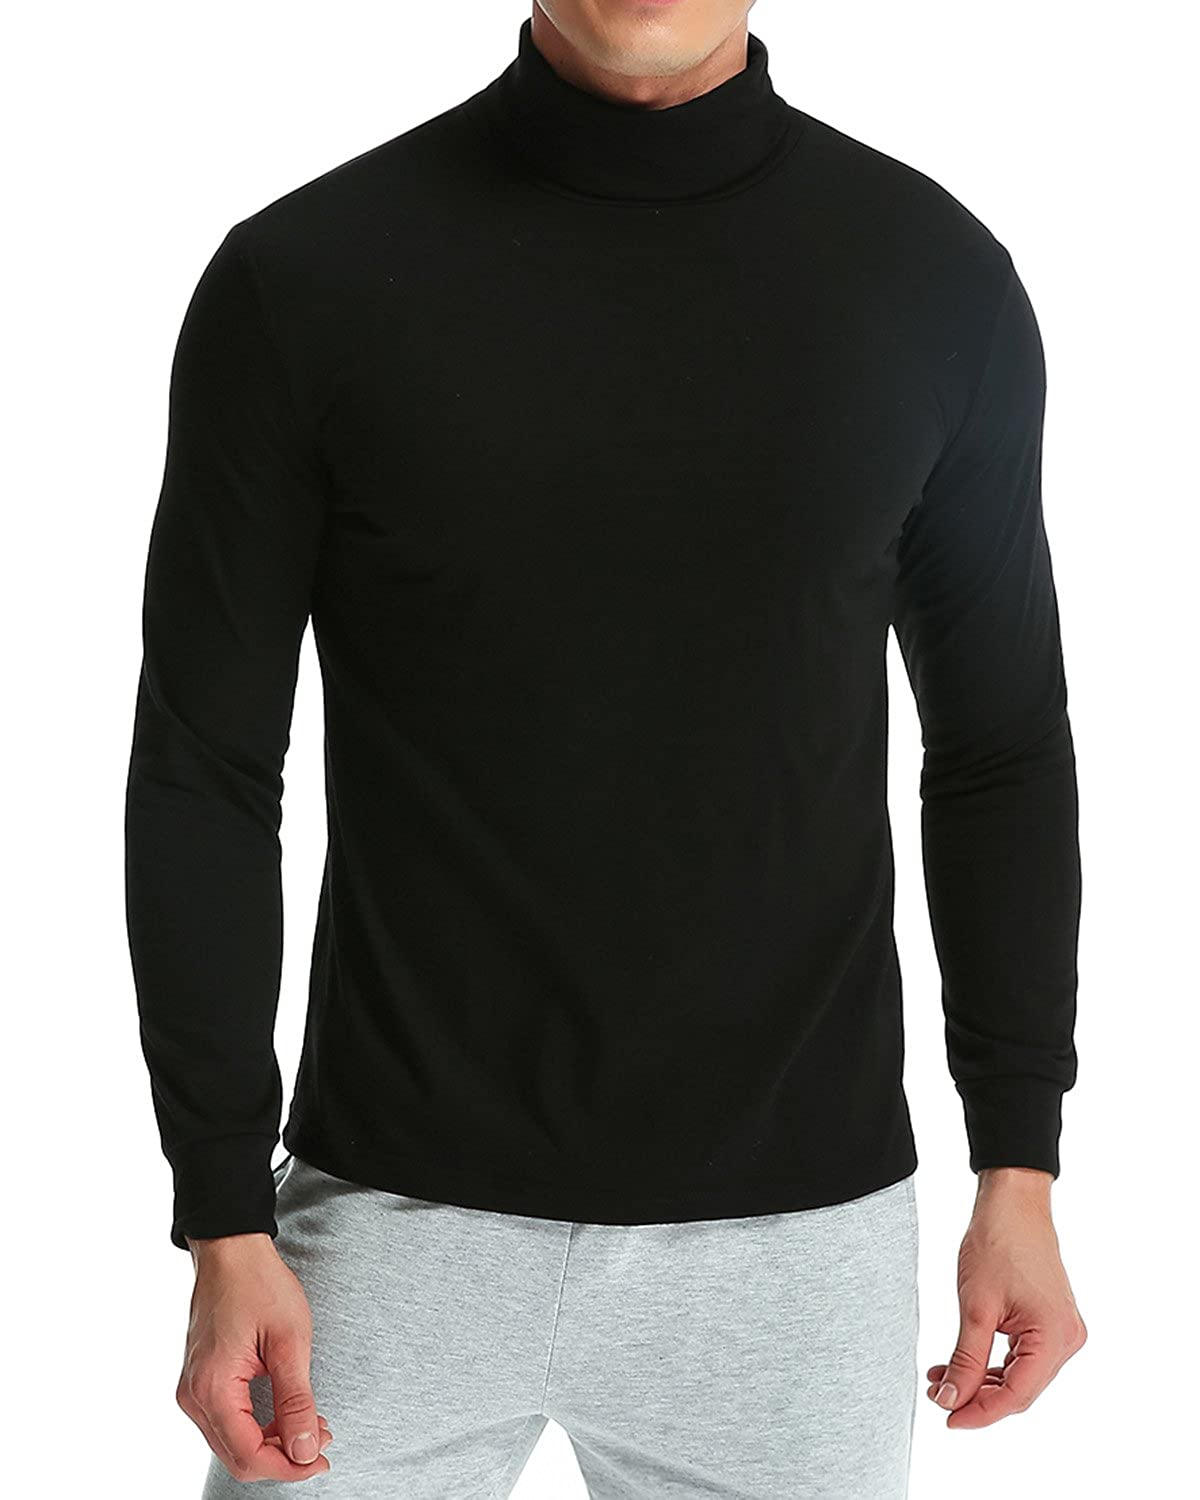 MODCHOK Men s Turtleneck T-Shirt Long Sleeve Pullover Thermal Sweaters Slim  Fit Shirts Lightweight Tops  6f7d94df7